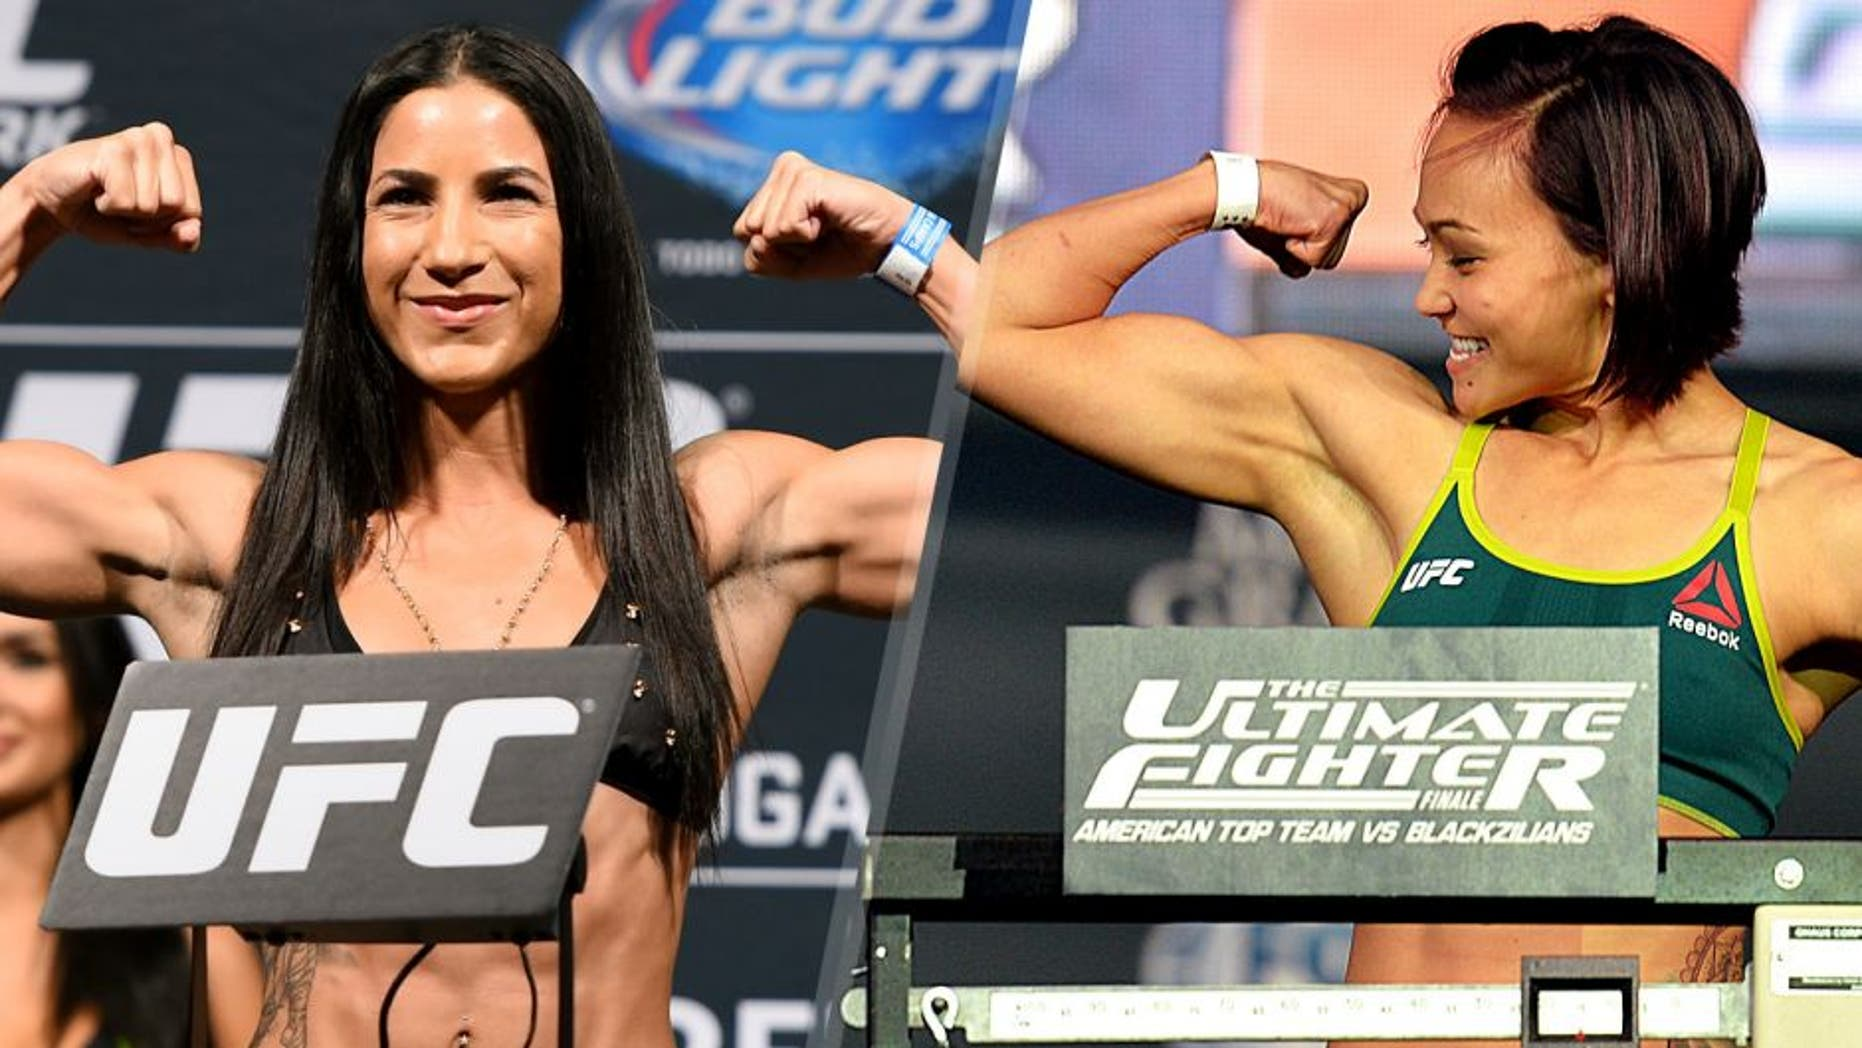 MEXICO CITY, MEXICO - JUNE 12: Tecia Torres of the United States steps on the scale during the UFC 188 weigh-in inside the Arena Ciudad de Mexico on June 12, 2015 in Mexico City, Mexico. (Photo by Josh Hedges/Zuffa LLC/Zuffa LLC via Getty Images) LAS VEGAS, NEVADA - JULY 11: Michelle Waterson steps onto the scale during the TUF 21 Finale Weigh-in at the UFC Fan Expo in the Sands Expo and Convention Center on July 11, 2015 in Las Vegas Nevada. (Photo by Brandon Magnus/Zuffa LLC/Zuffa LLC via Getty Images)